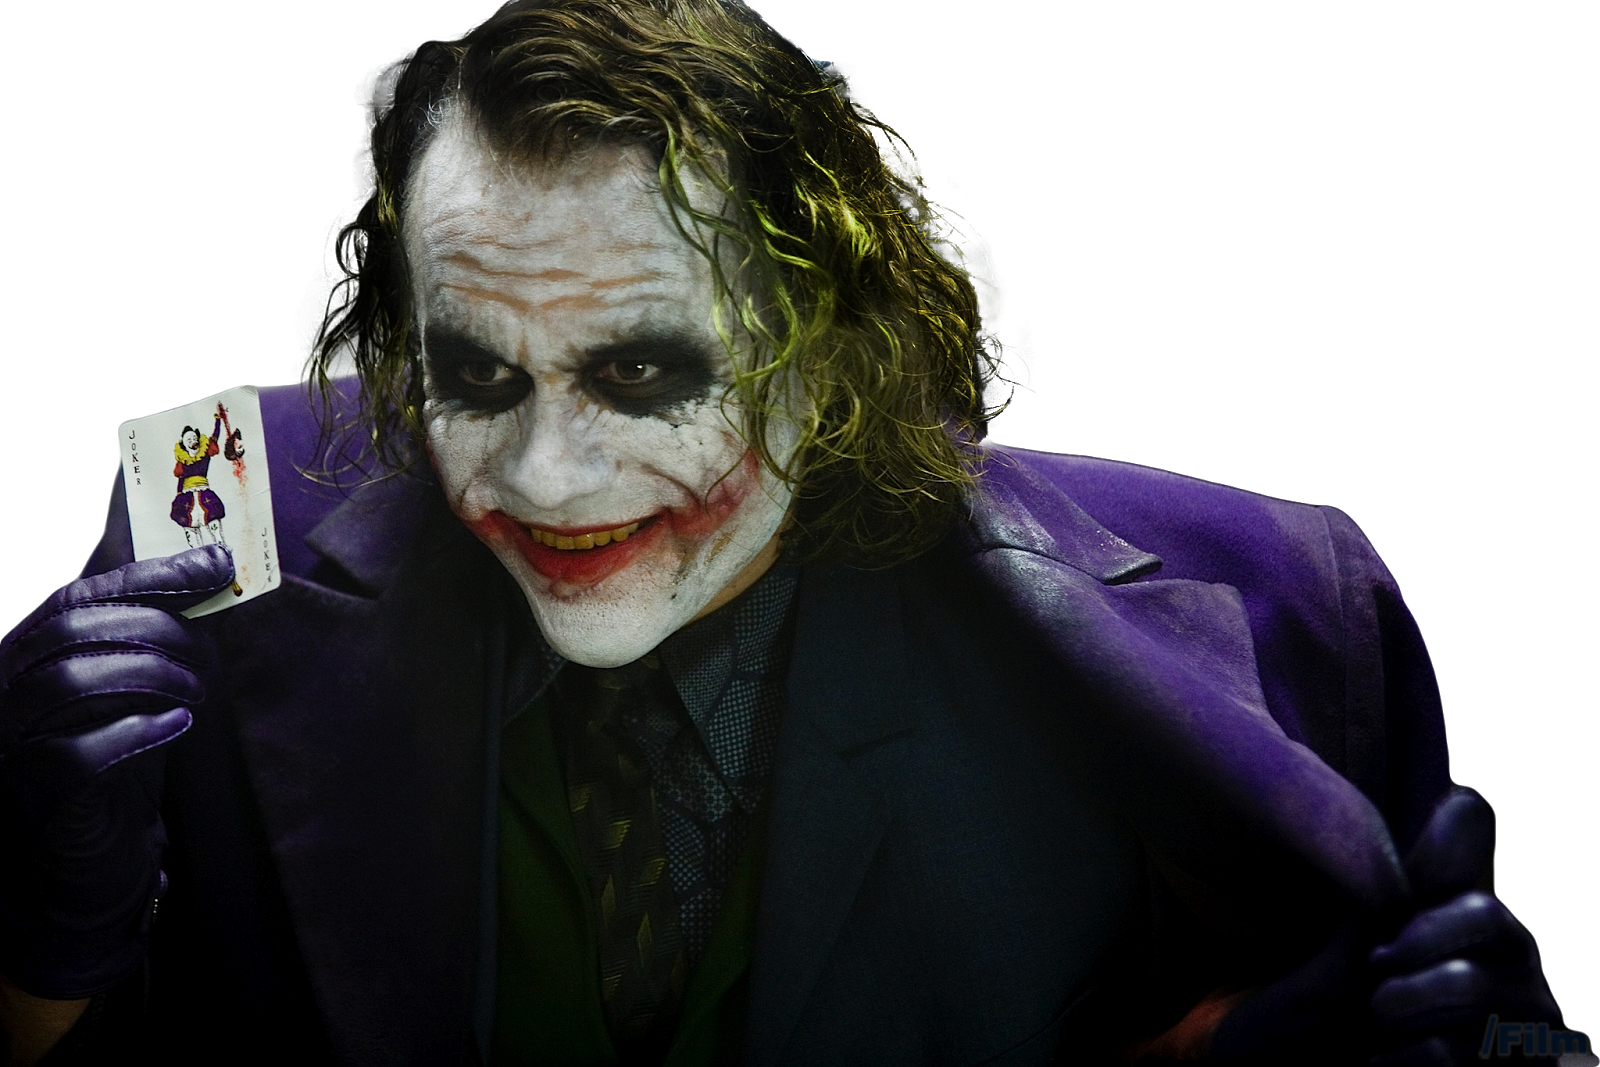 Hd Wallpapers Render Coringa 400 X 395 229 Kb Png Hd Transparent Heath Ledger Joker 1600x1067 Download Hd Wallpaper Wallpapertip